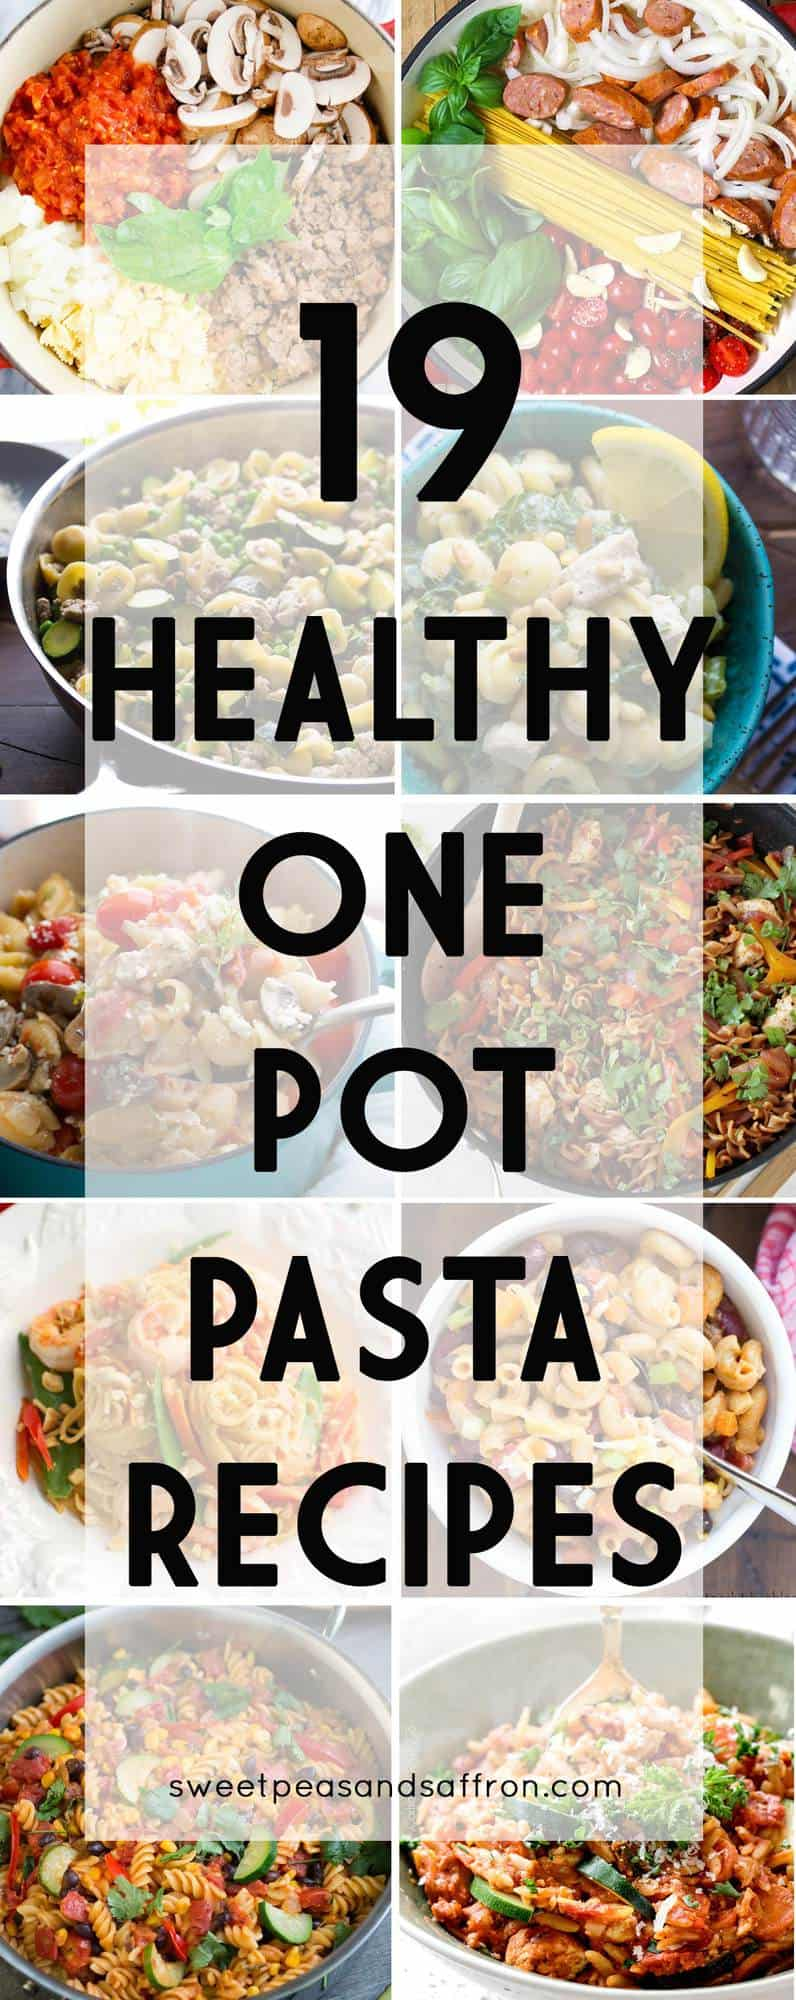 19 Healthy One Pot Pasta Recipes! Healthy dinner recipes that cook all in one pot, and contain protein and a healthy serving of vegetables!